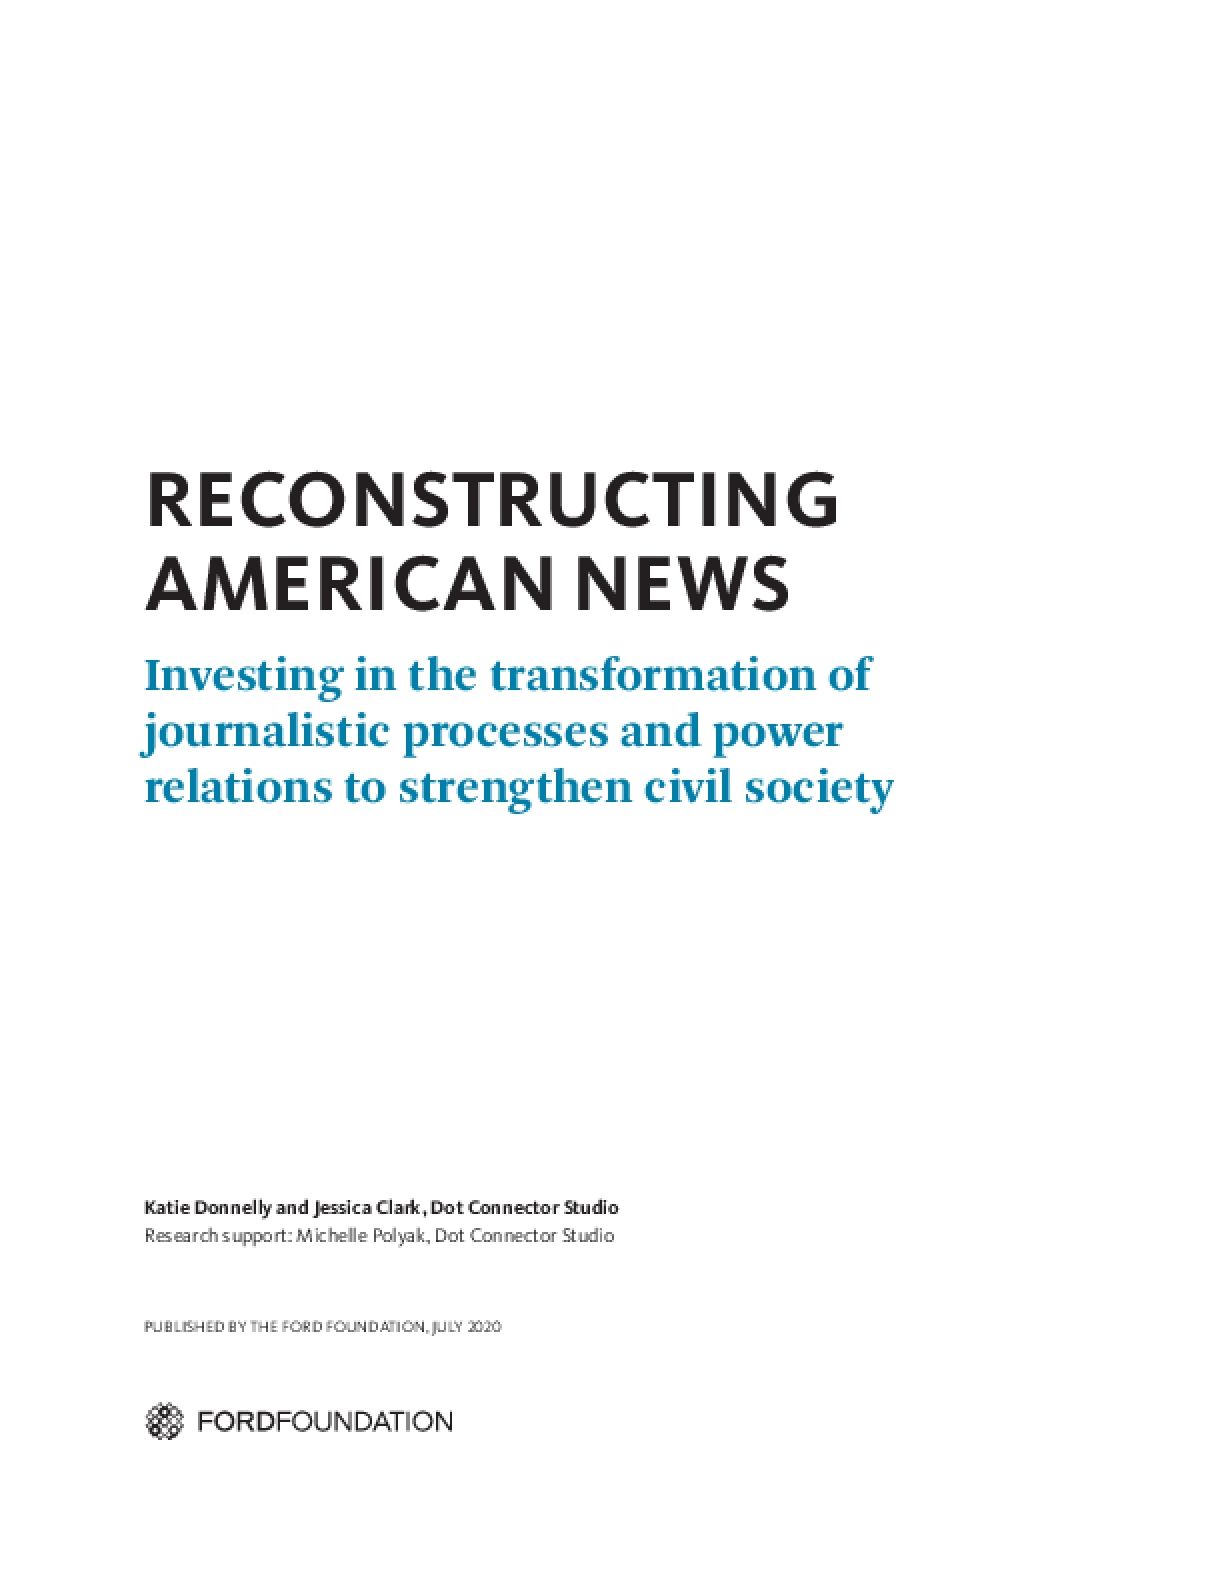 Reconstructing American News:  Investing In The Transformation Of Journalistic Processes And Power Relations To Strengthen Civil Society